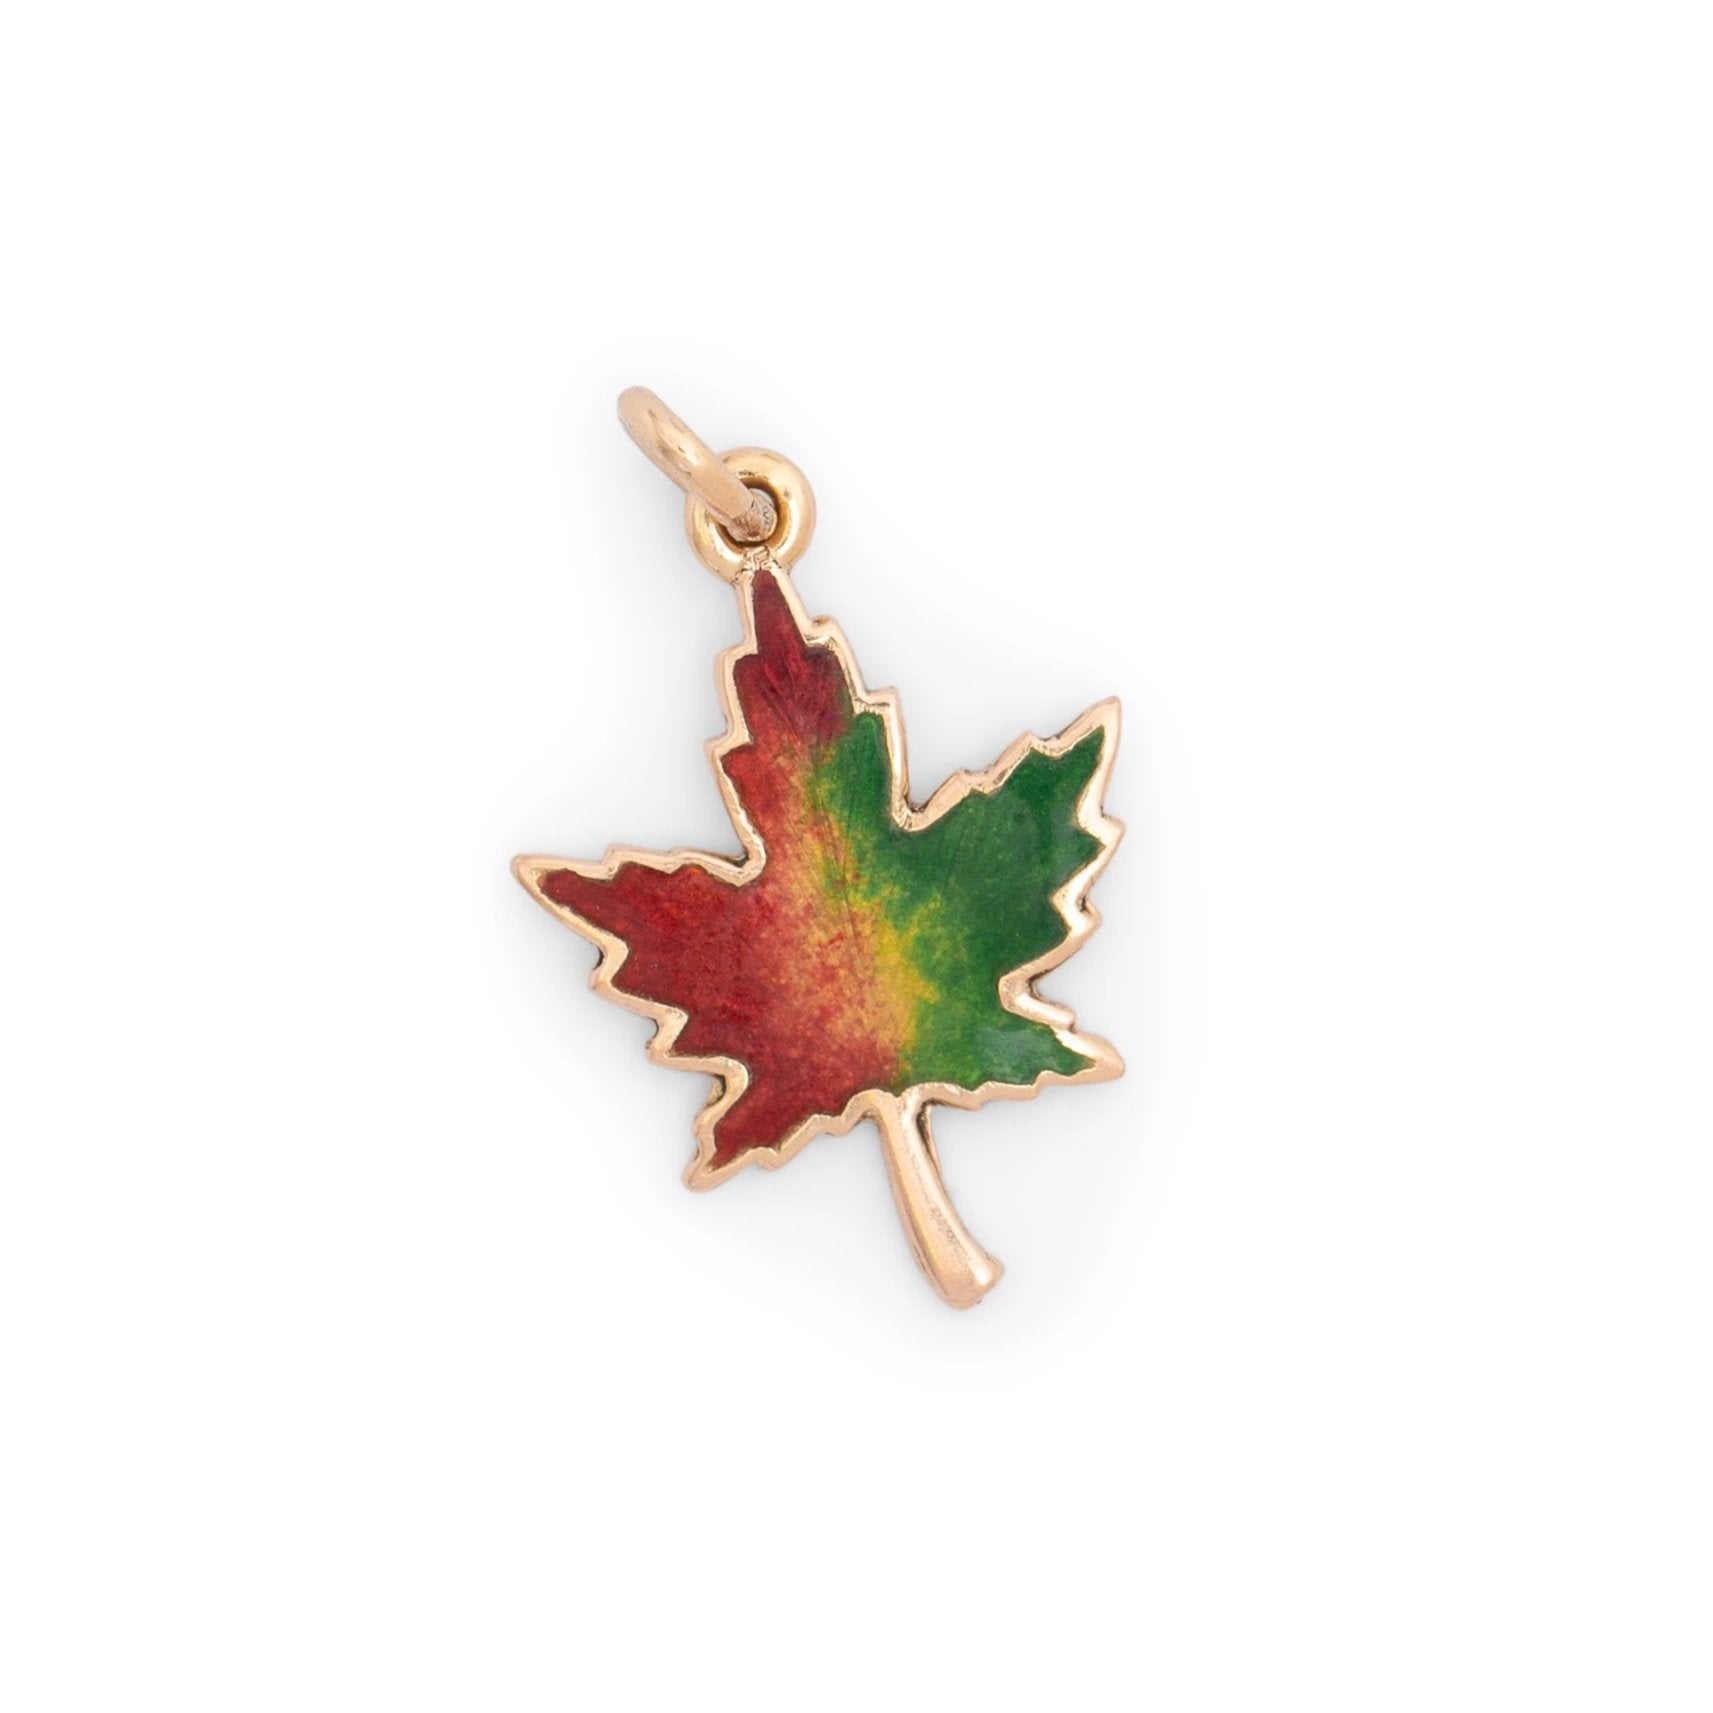 Maple Leaf 10k Gold and Enamel Charm